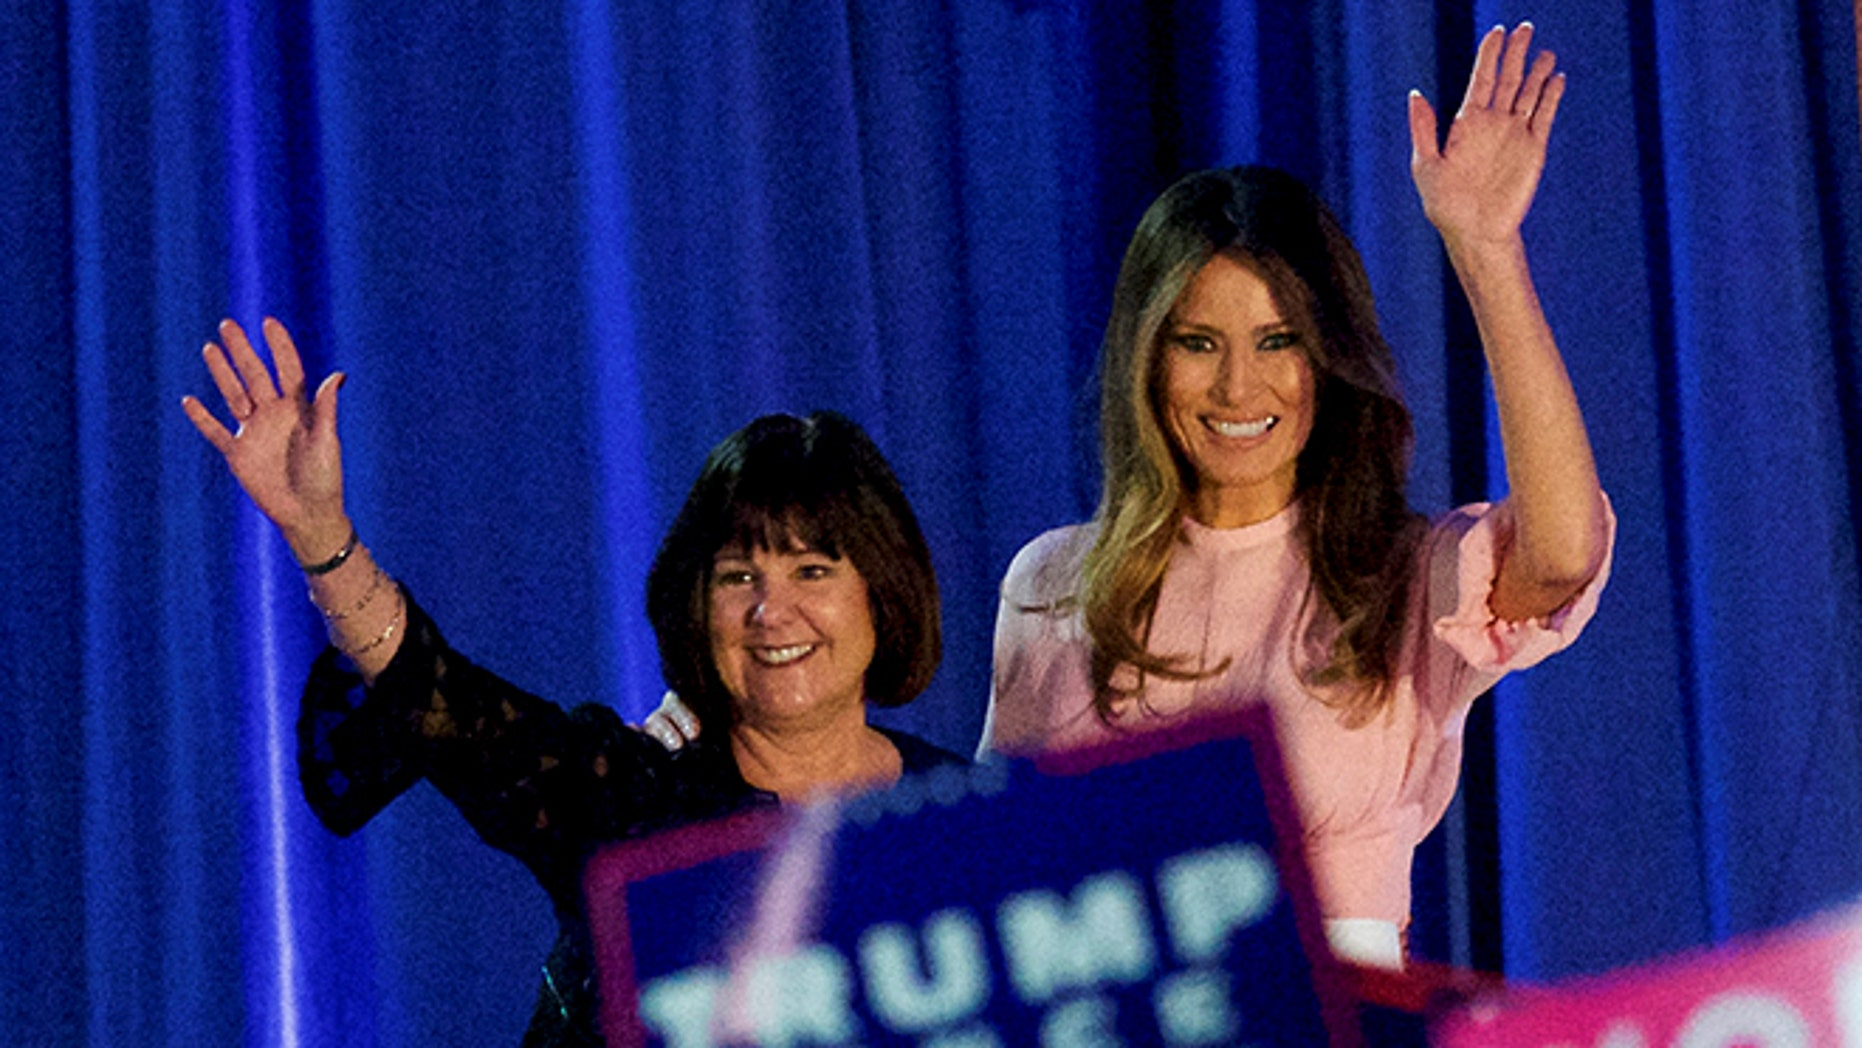 Melania Trump and Karen Pence on the campaign trail on Nov. 3, 2016, in Pennsylvania, days before the election. (Reuters)